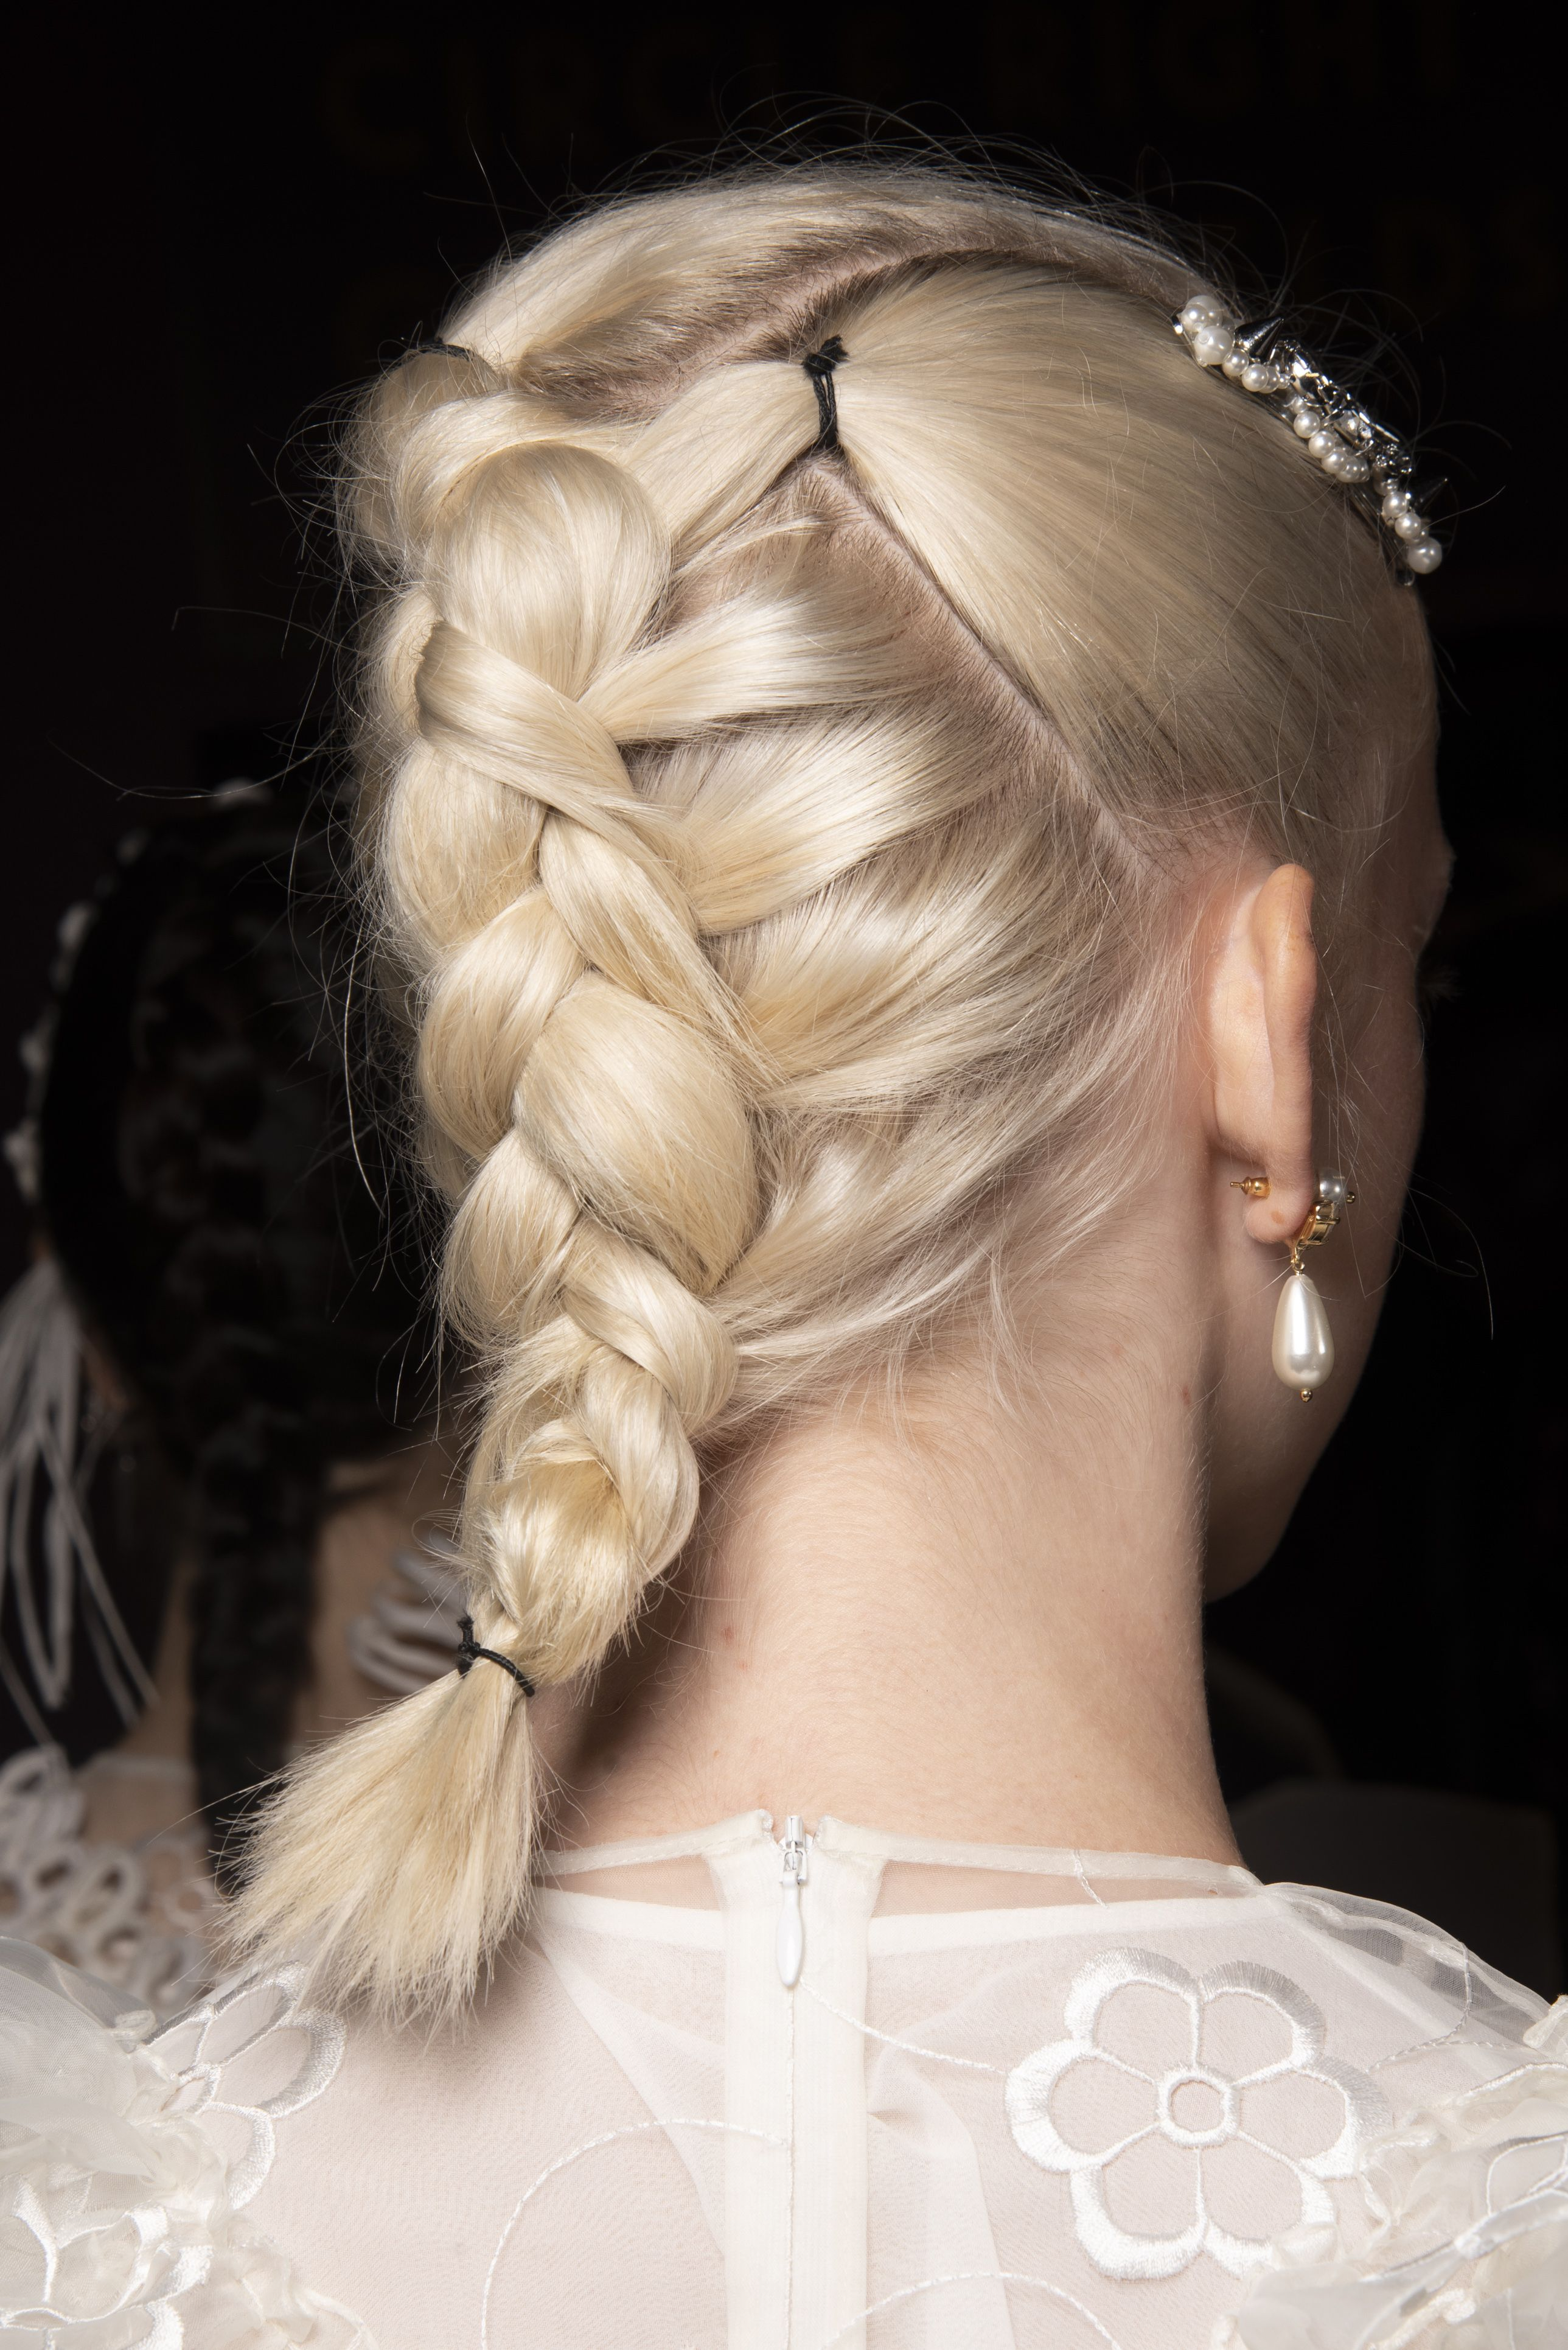 Wedding Hair Inspiration - Wedding Hairstyles for Brides & Bridesmaids